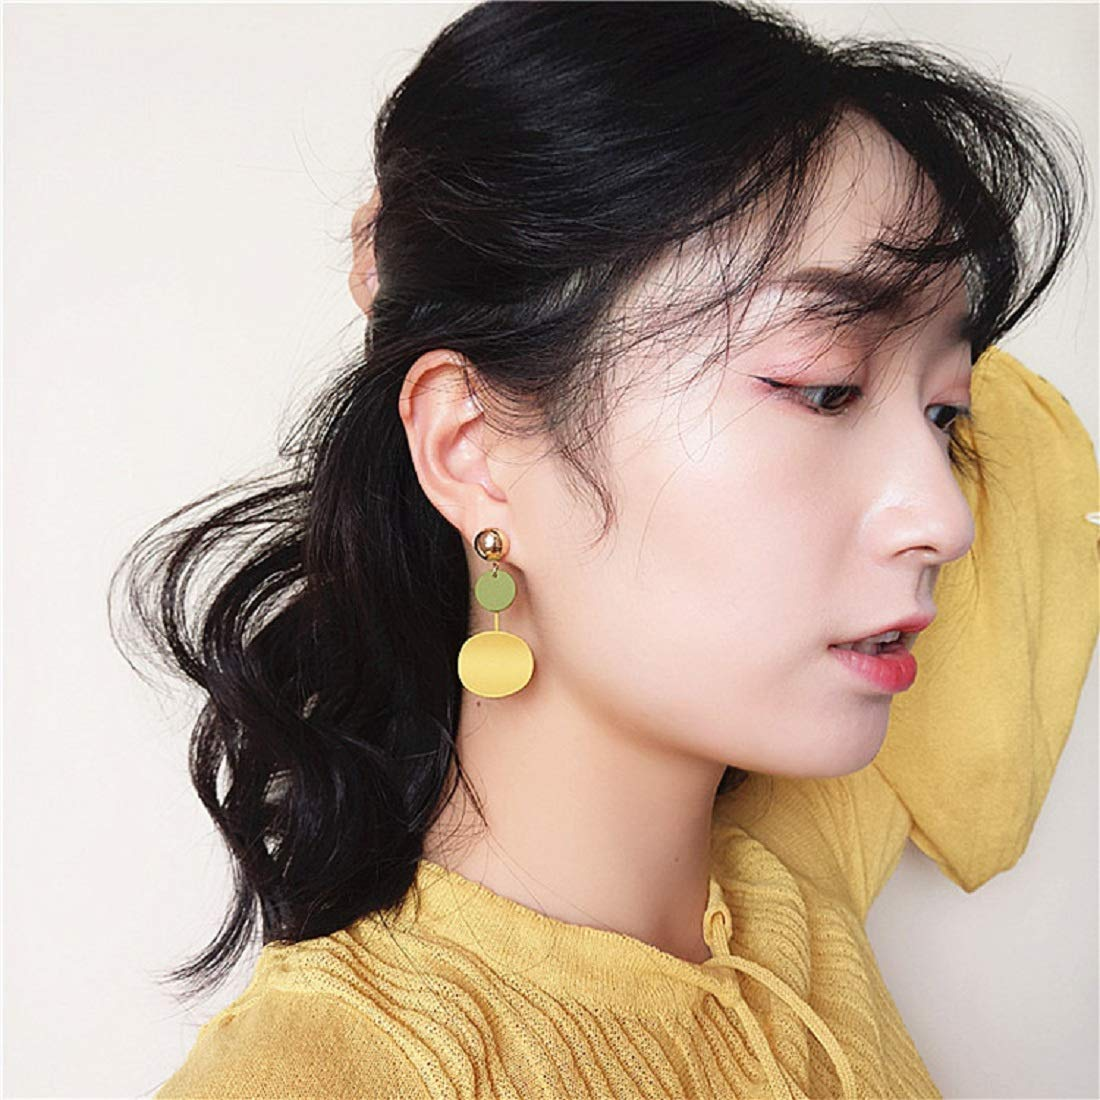 JXVLUYE Colors Earring for Women Girls Great Gifts for Women Girls Fashion Simple Style Earring